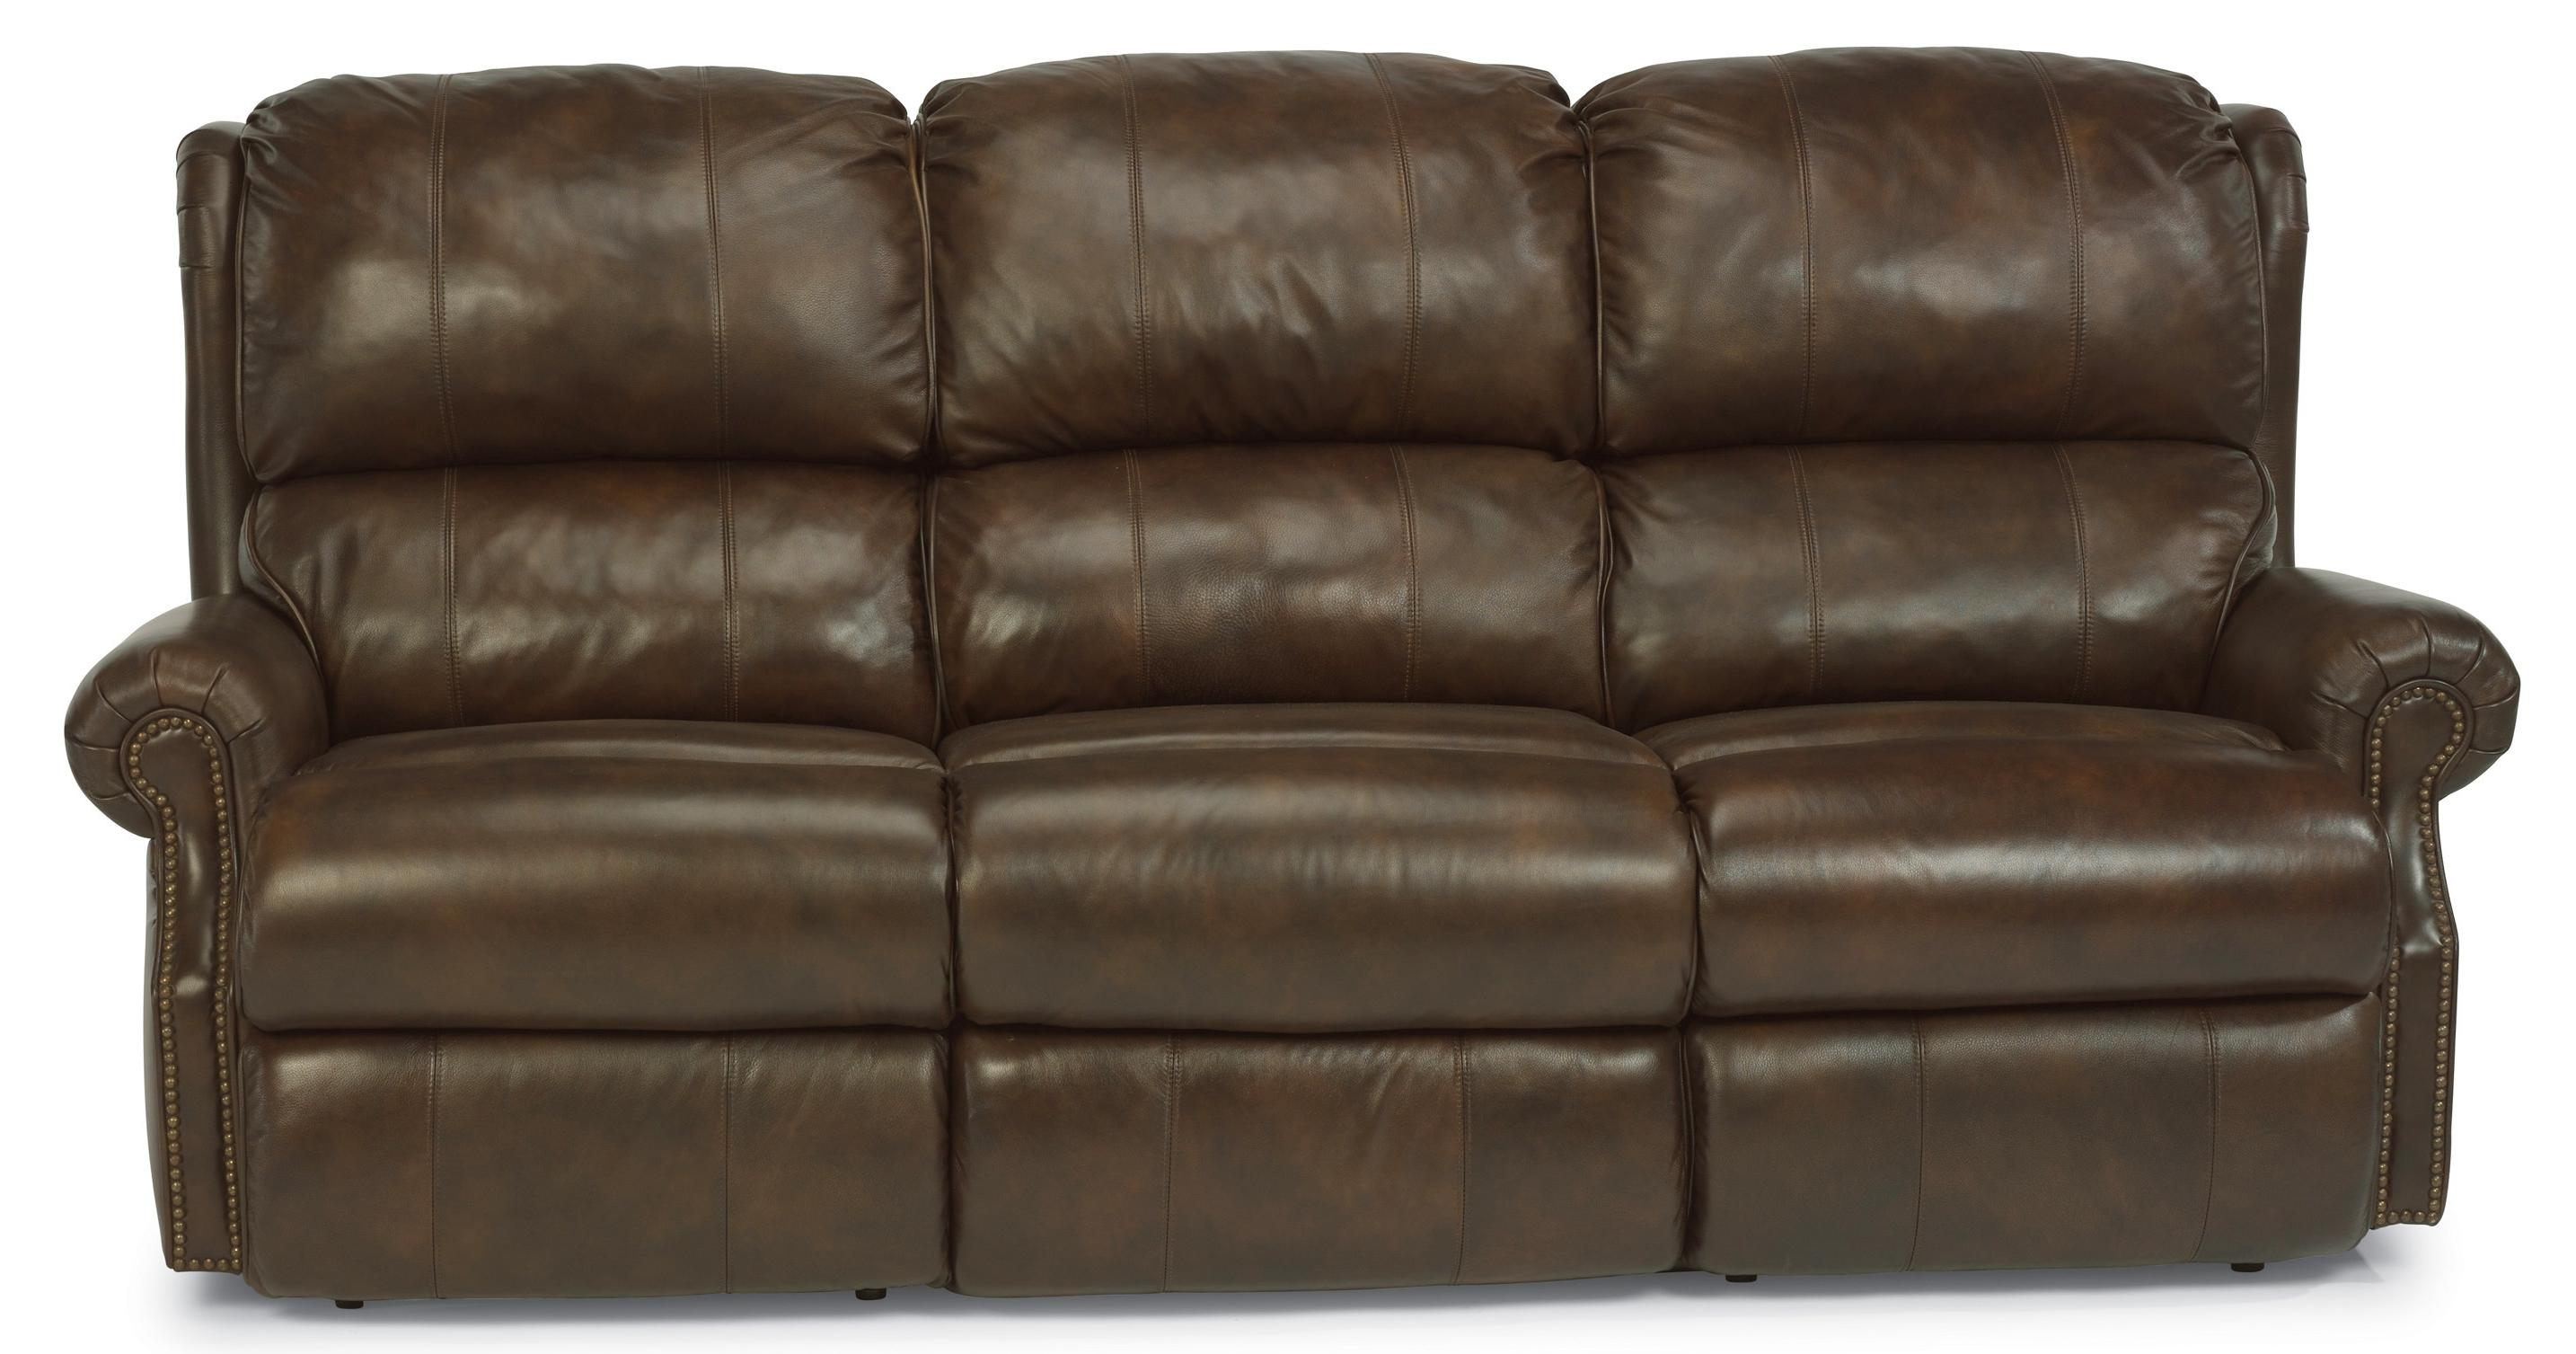 Flexsteel Latitudes - Comfort Zone Power Reclining Sofa - Item Number: 1227-62P